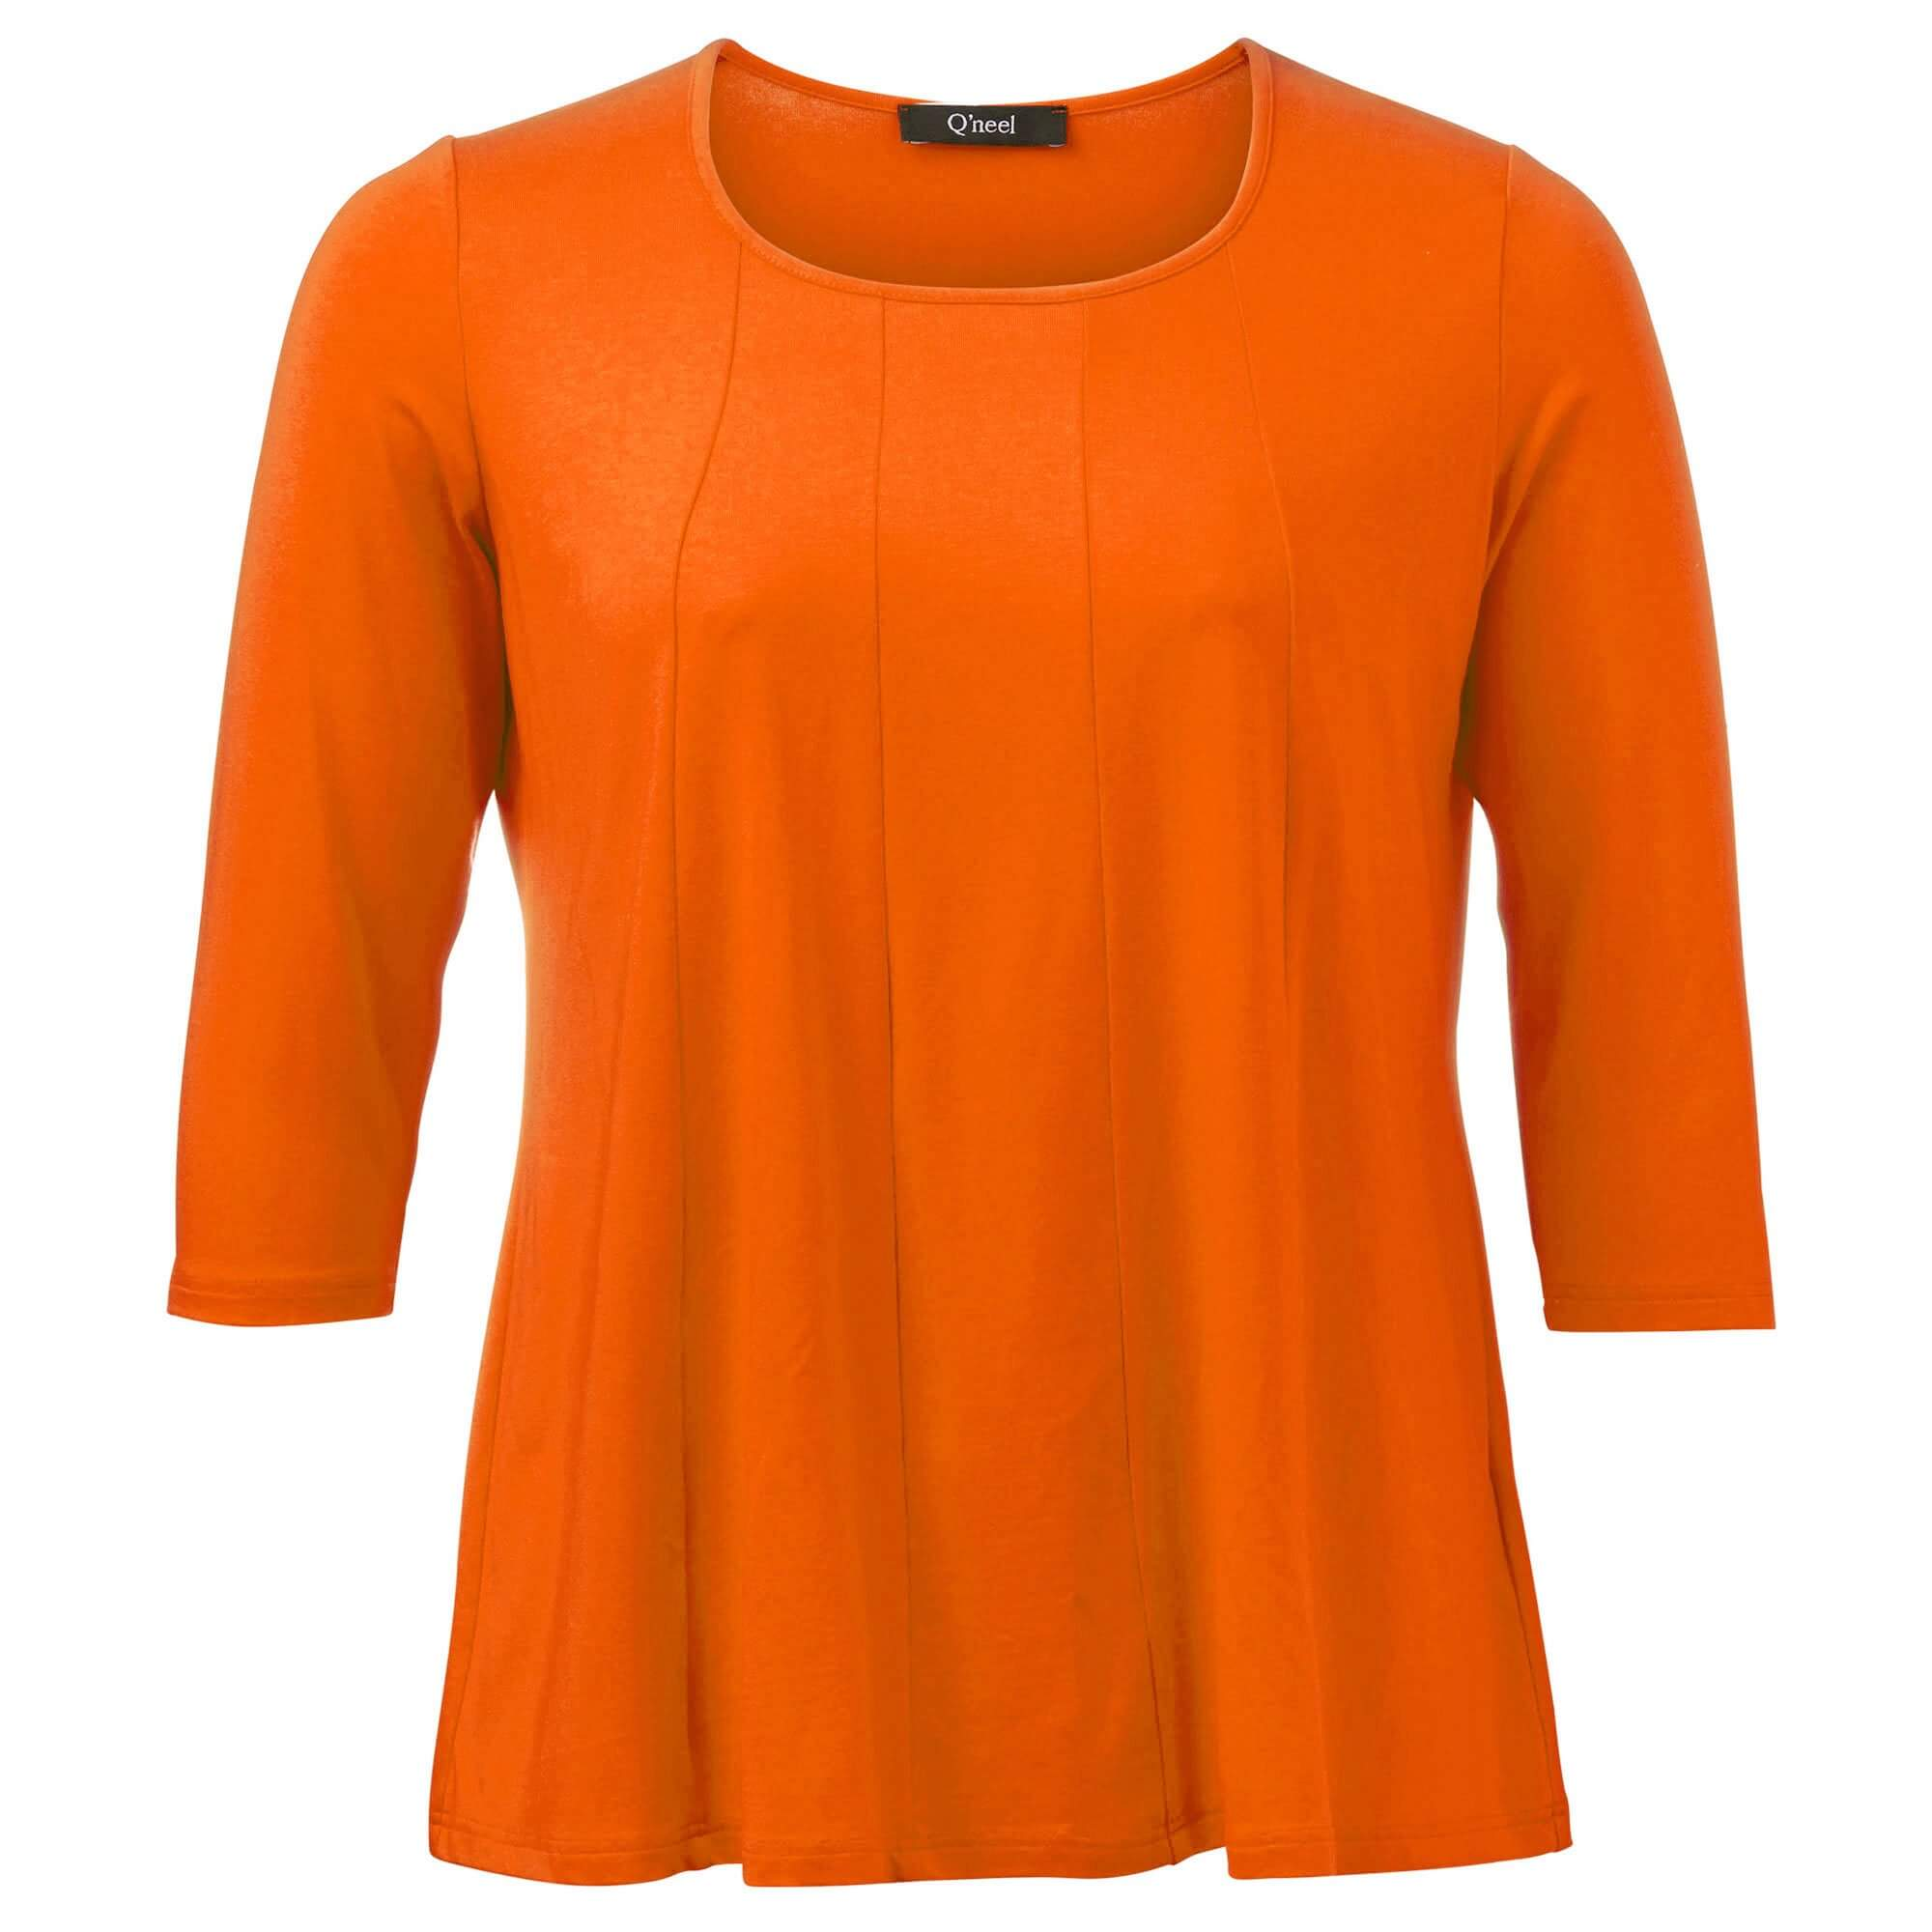 Orange jersey bluse med 3/4 ærmer